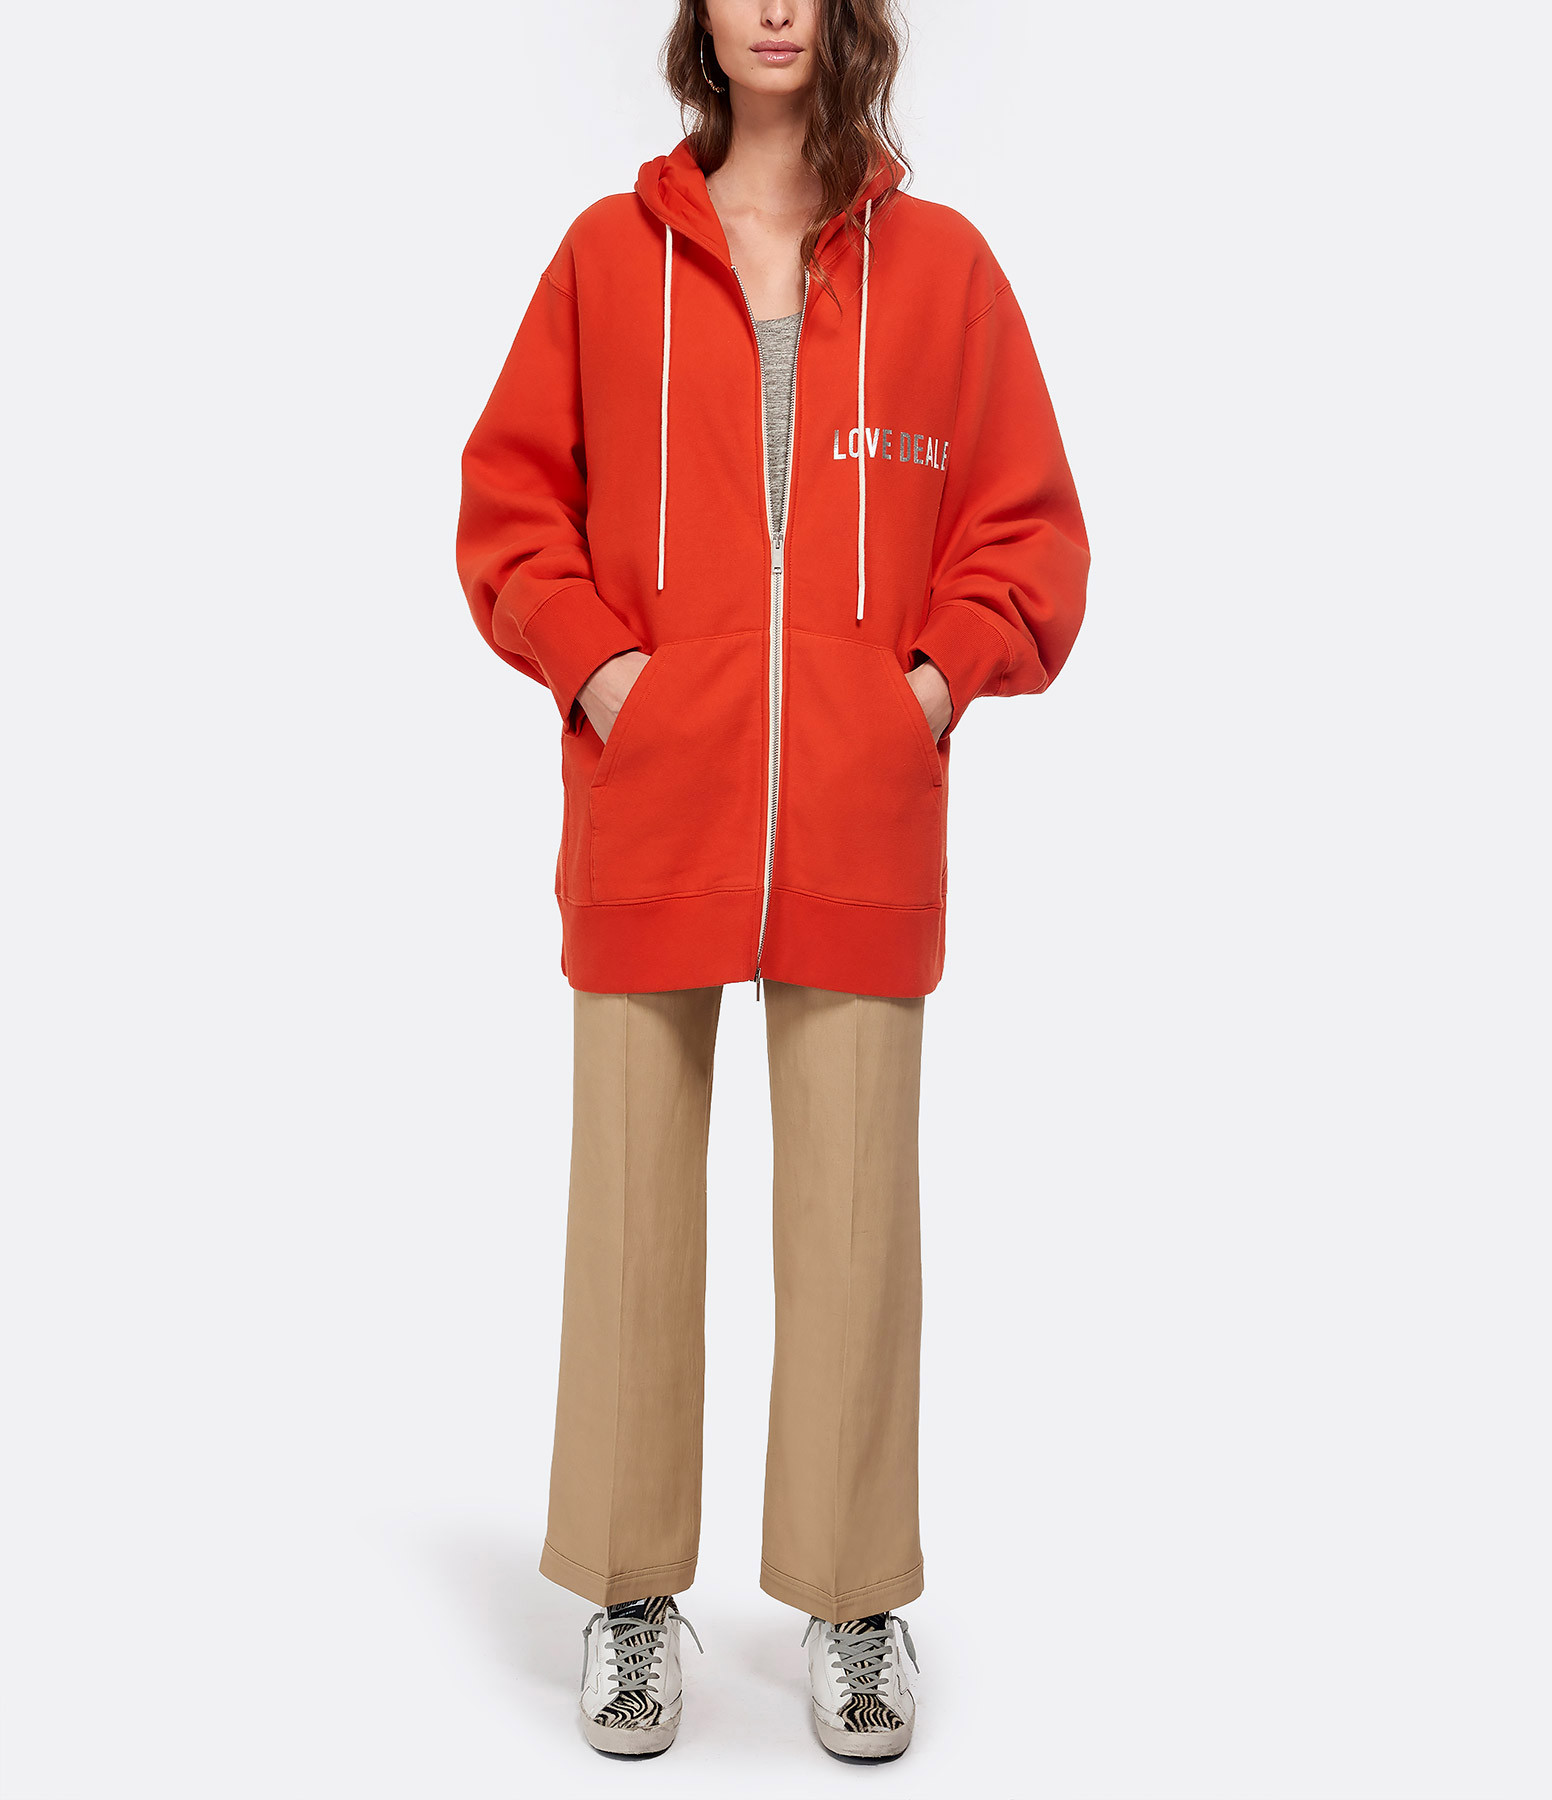 GOLDEN GOOSE - Veste Love Dealer Coton Orange